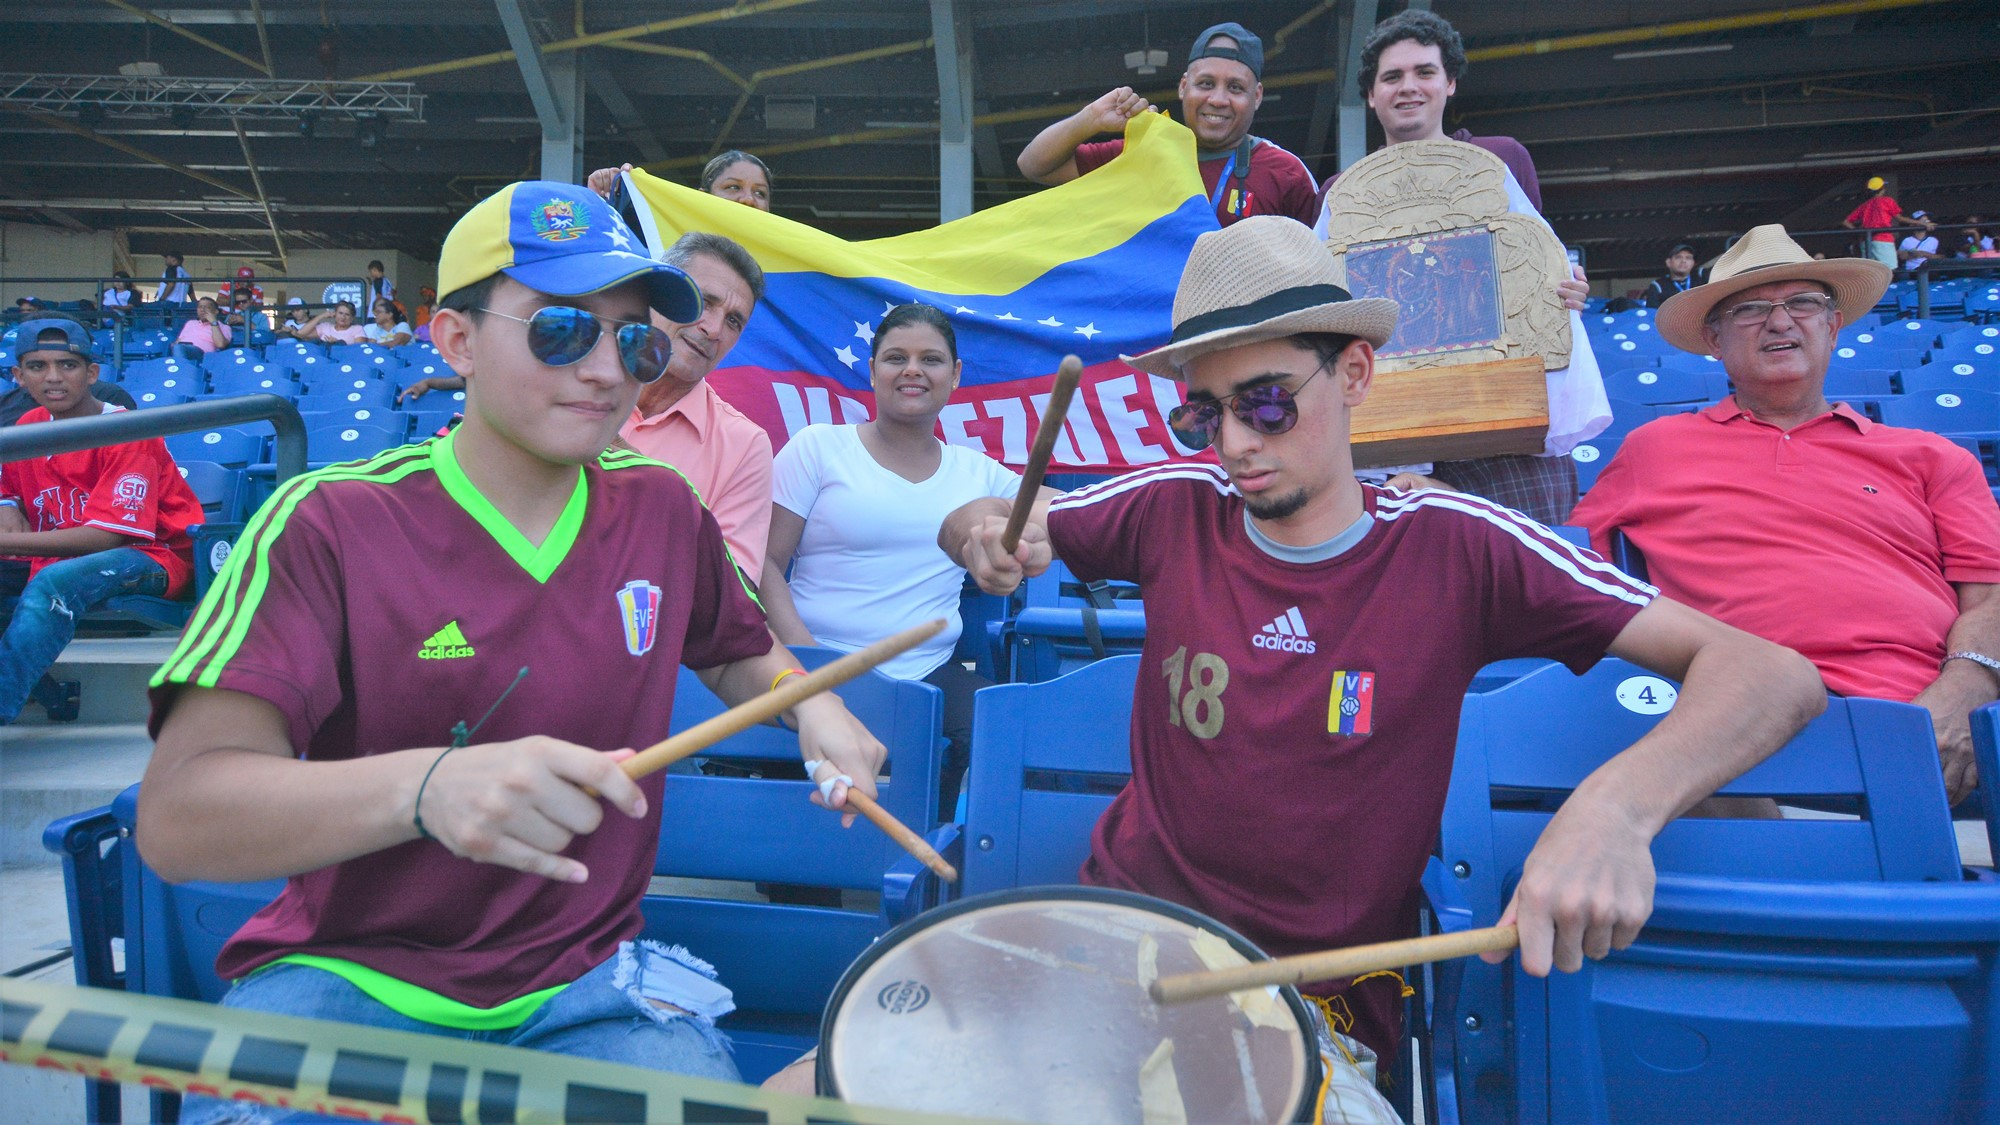 Venezuela fans at the Edgar Renteria stadium in Barranquilla